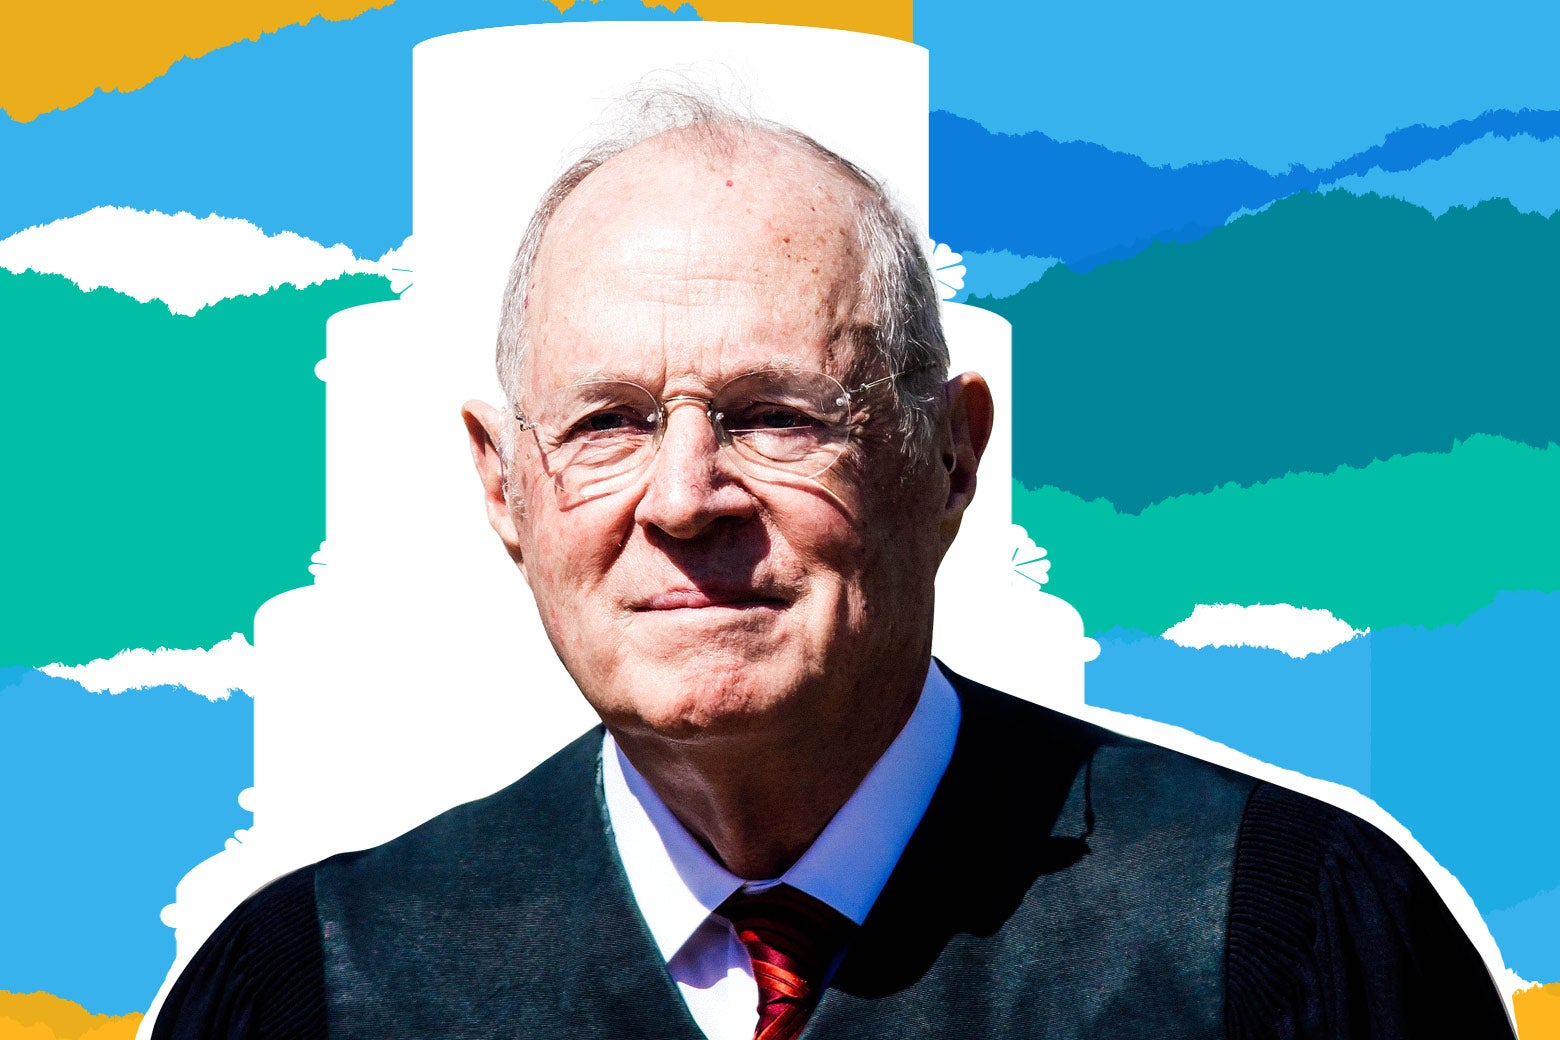 Photo illustration: Supreme Court Justice Anthony Kennedy against a blue, green, yellow, and white background.